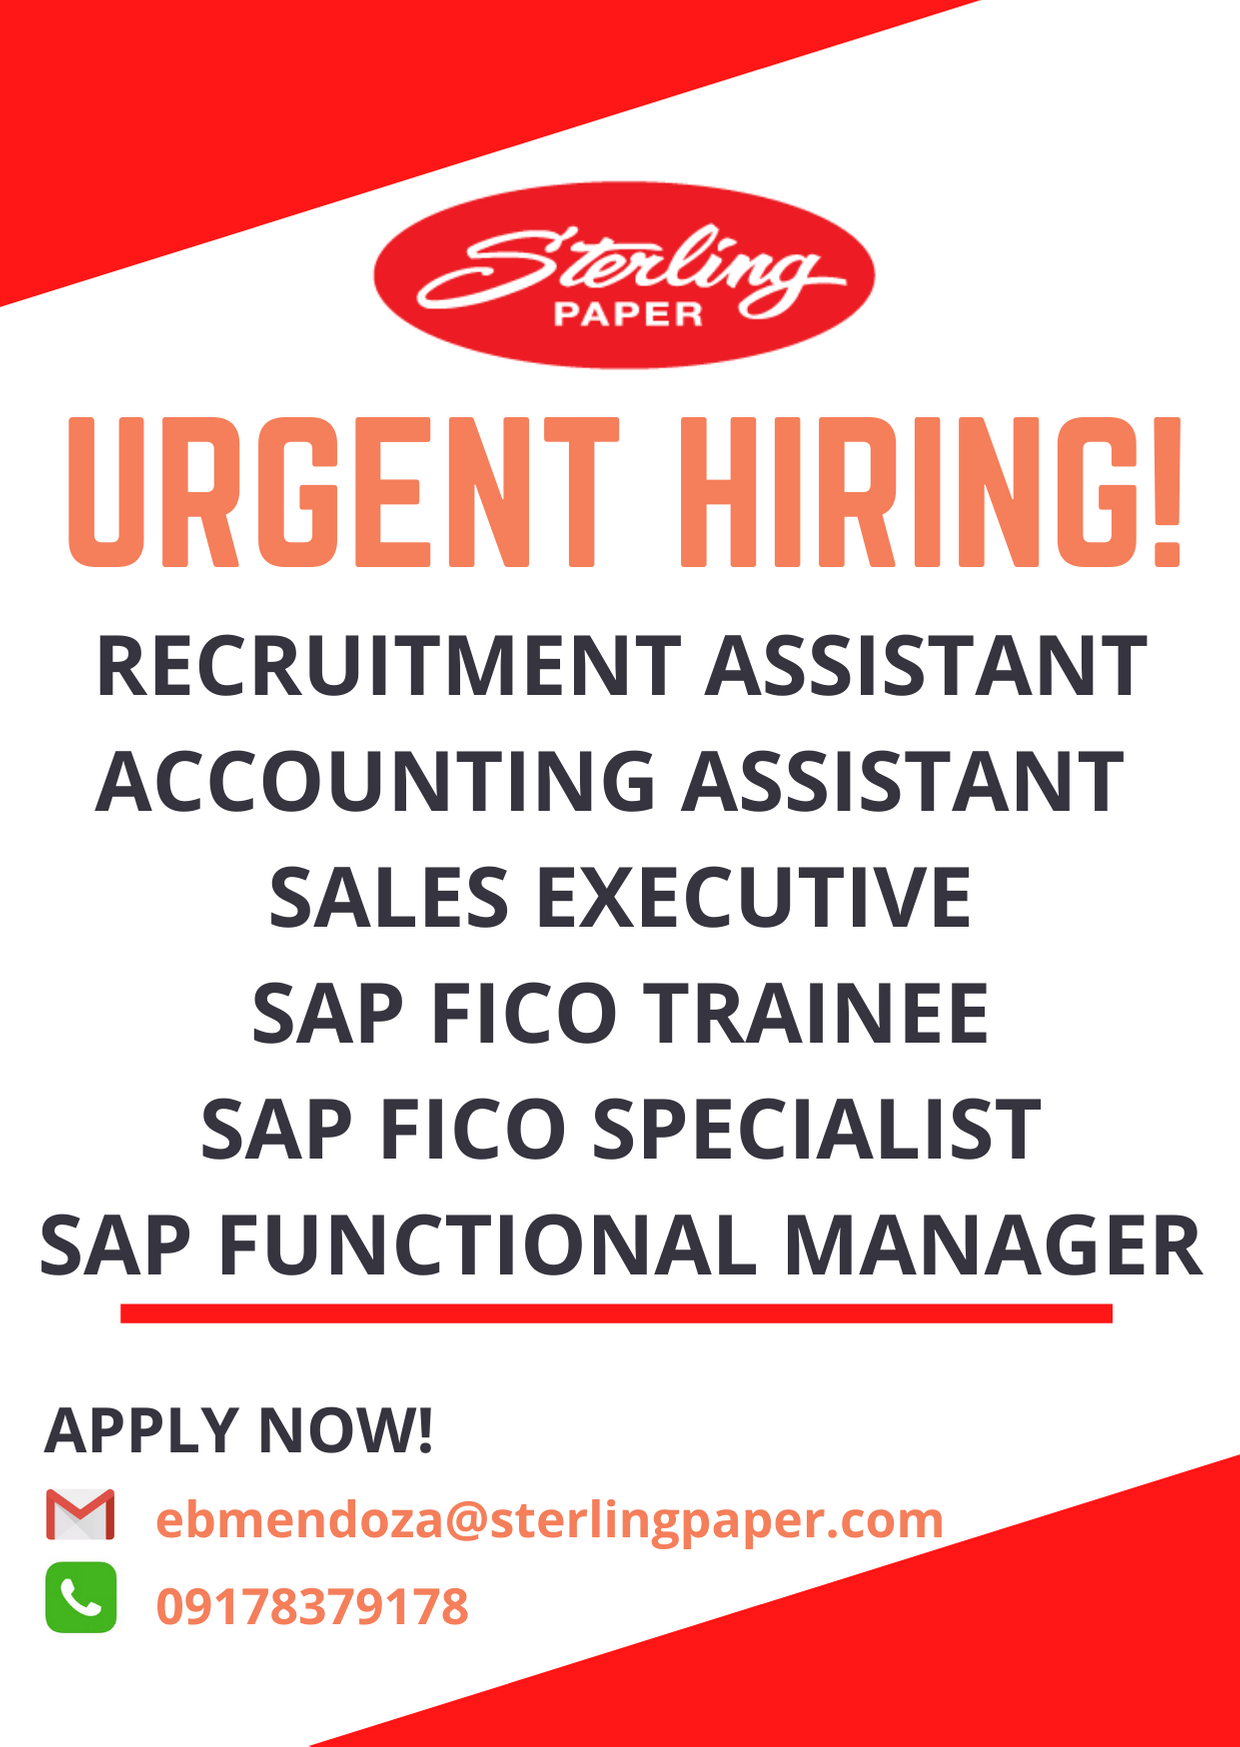 Sap Trainee/specialist from STERLING PAPER GROUP OF COMPANIES